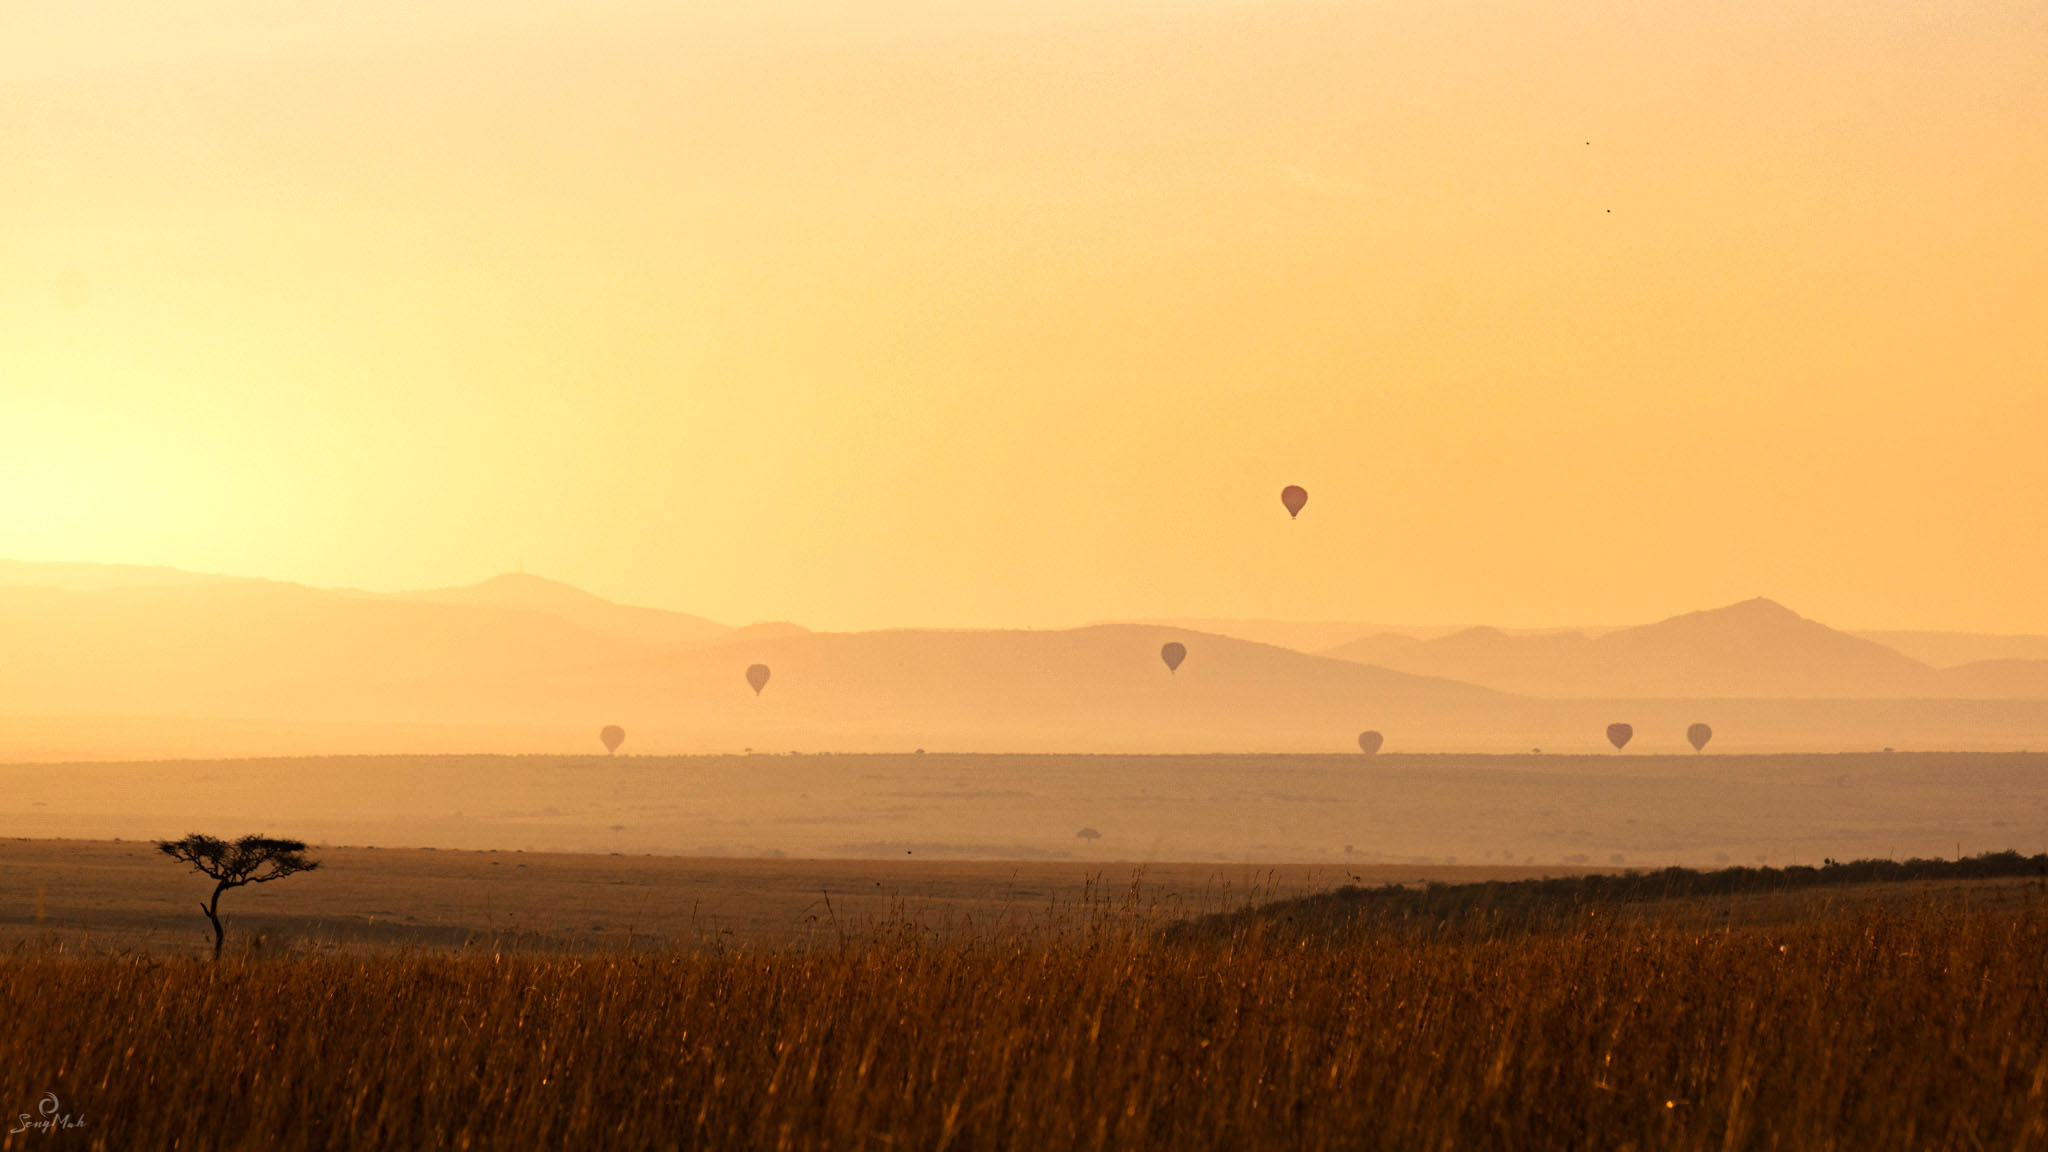 Hot air balloons at sunrise in the Maasai Mara